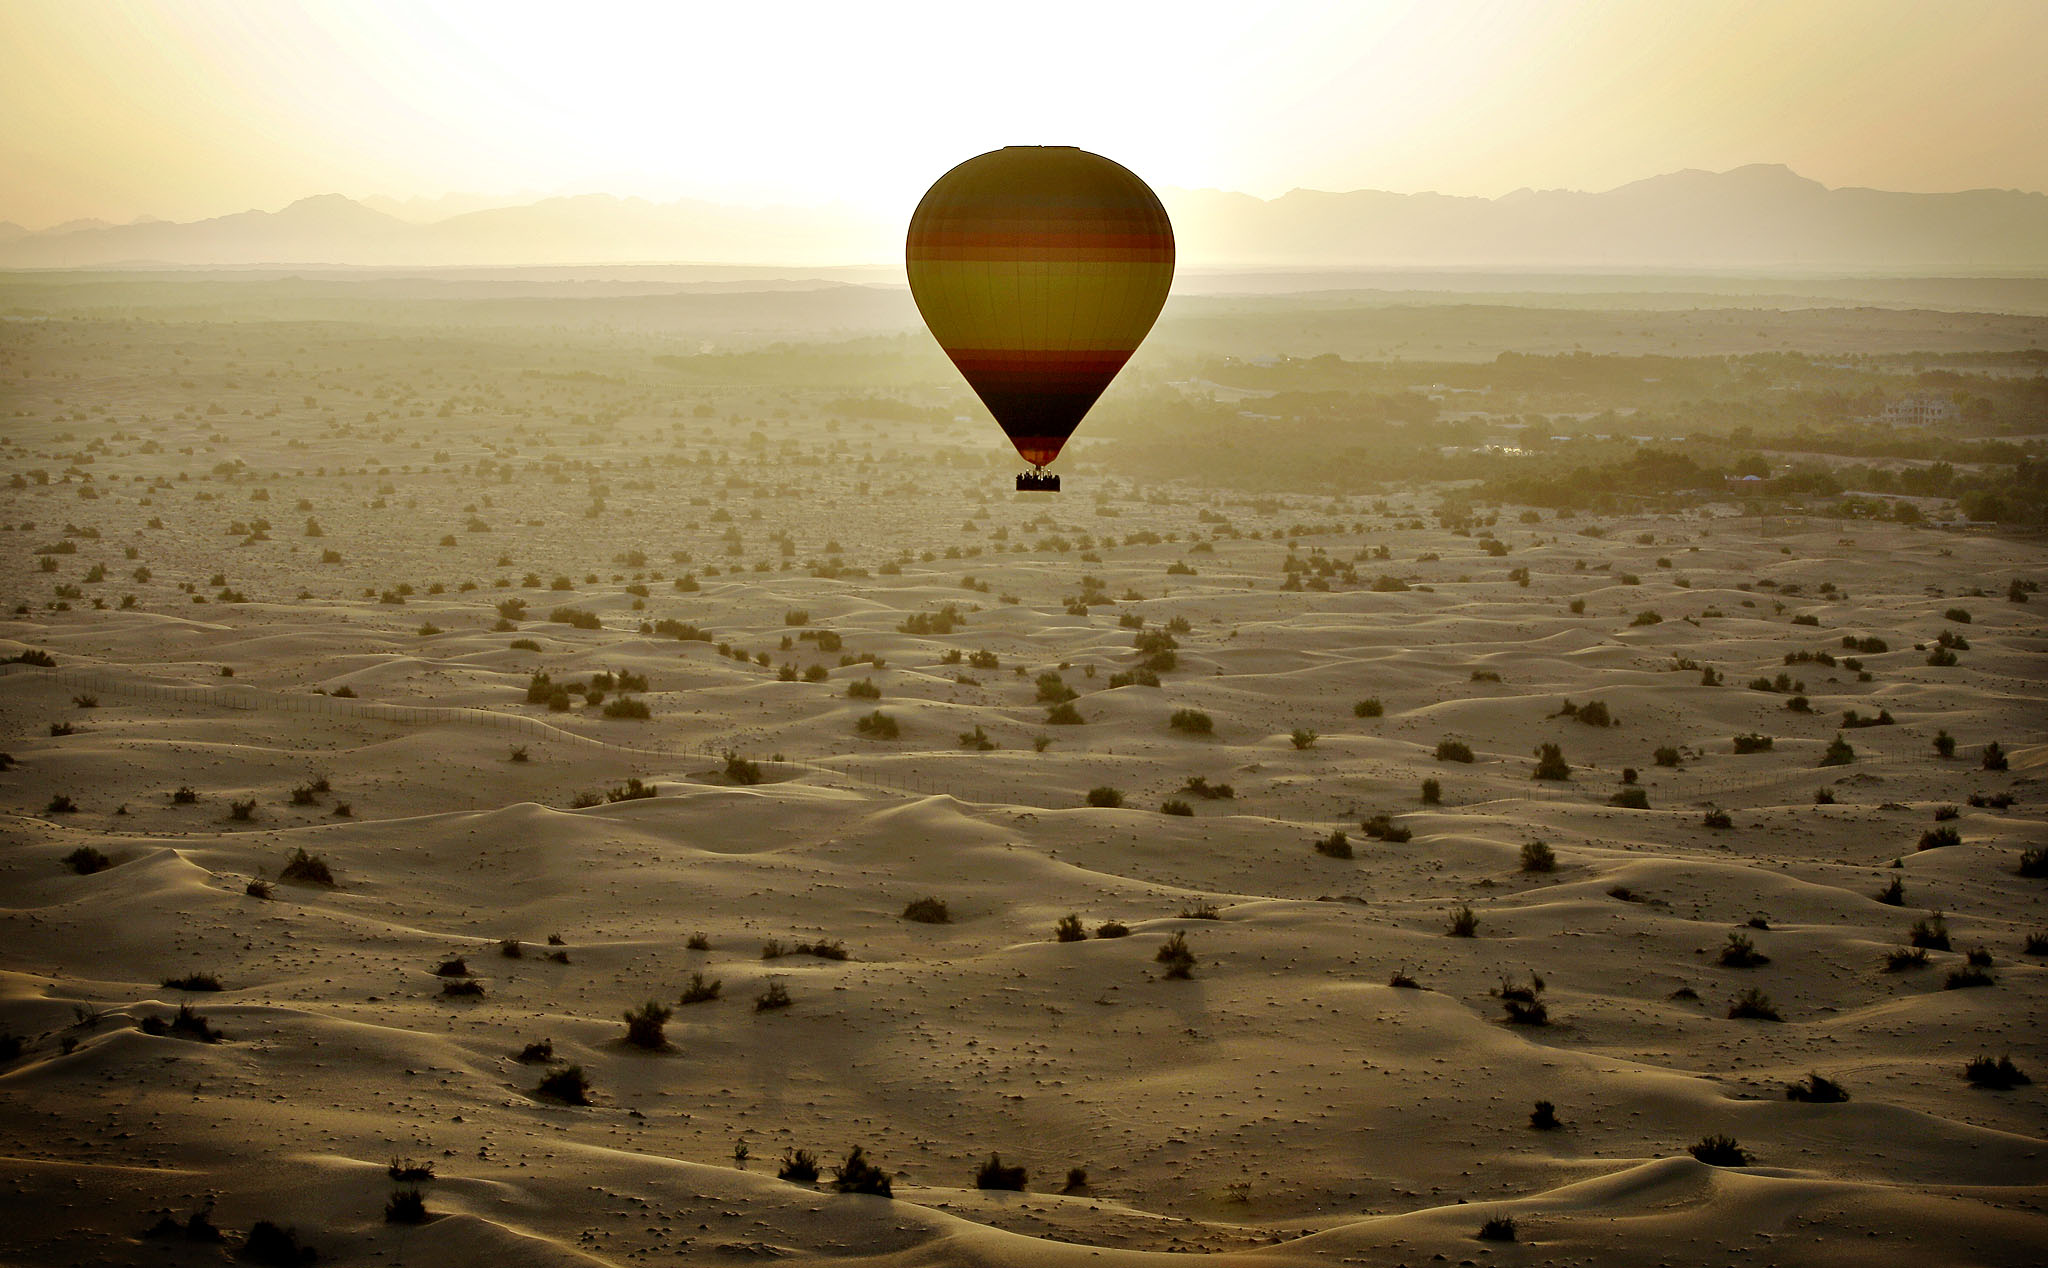 The sun rises from behind the Hajjar Mountains as one of the world largest hot air balloons carries 24 passengers flying over the Margham desert about 60 km (37 miles) southeast of Dubai, United Arab Emirates